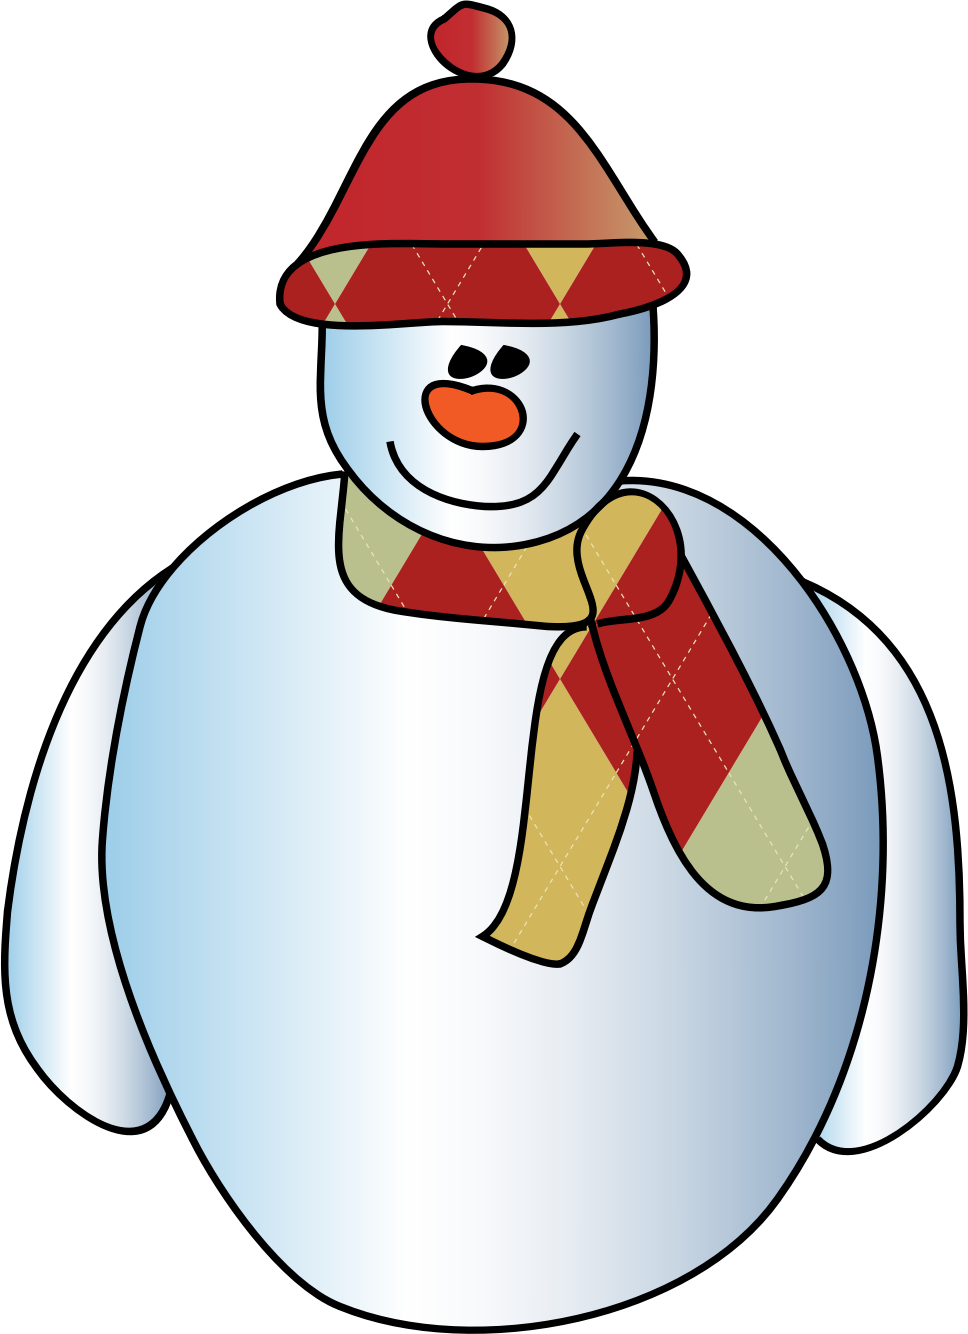 Happy snowman by spevi